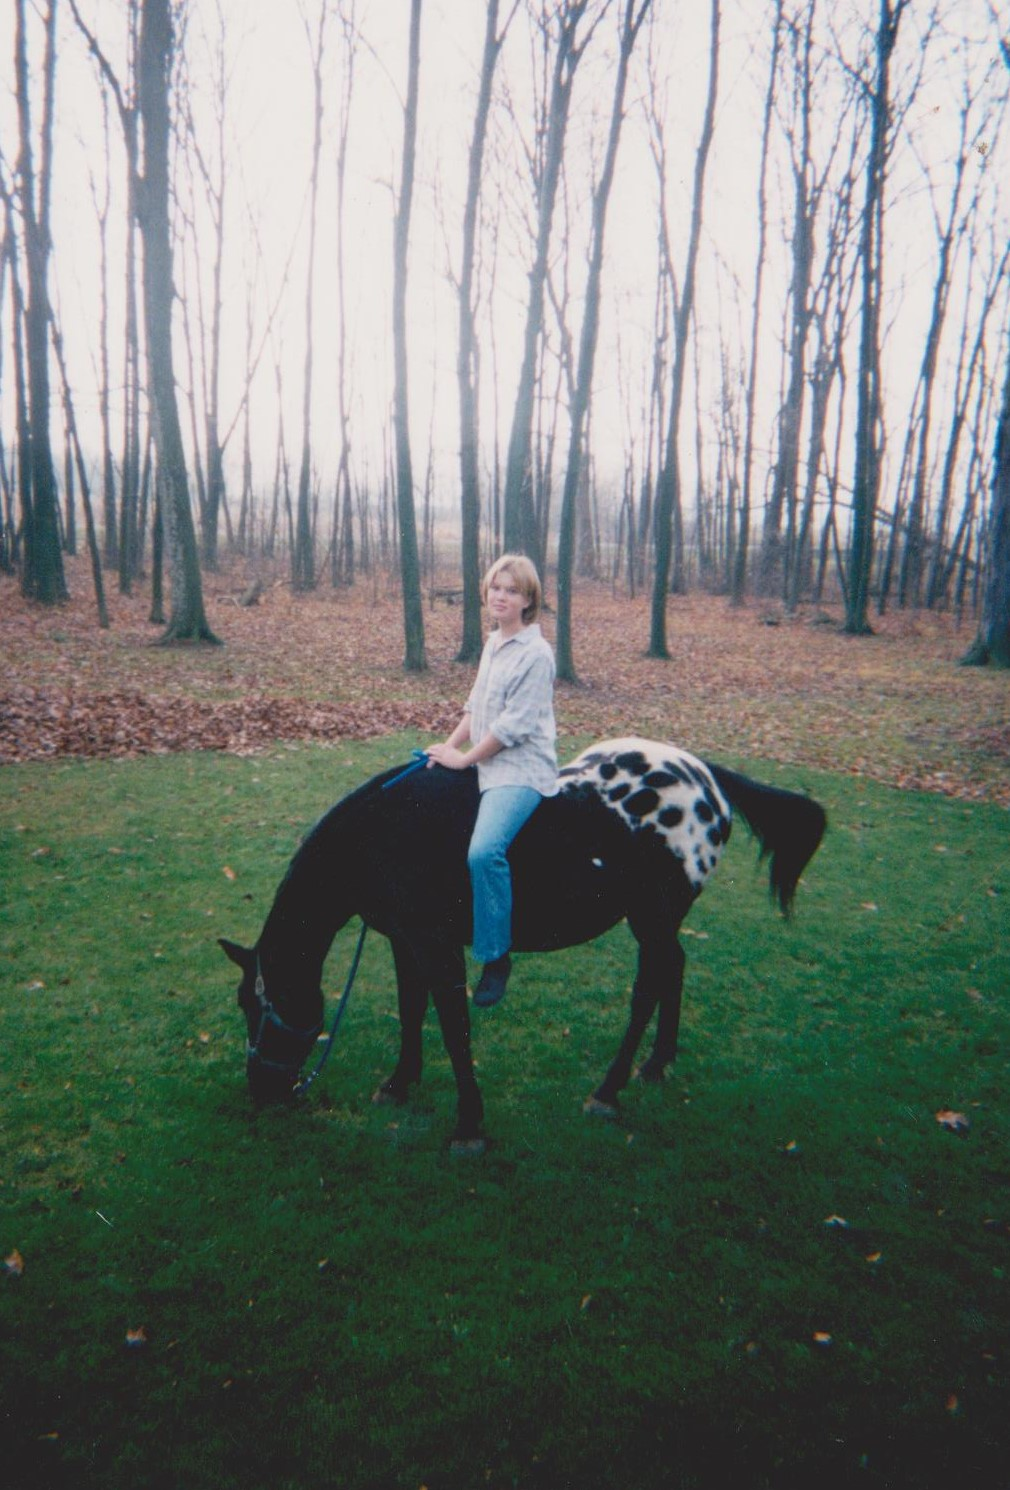 Bareback and carefree, age 13